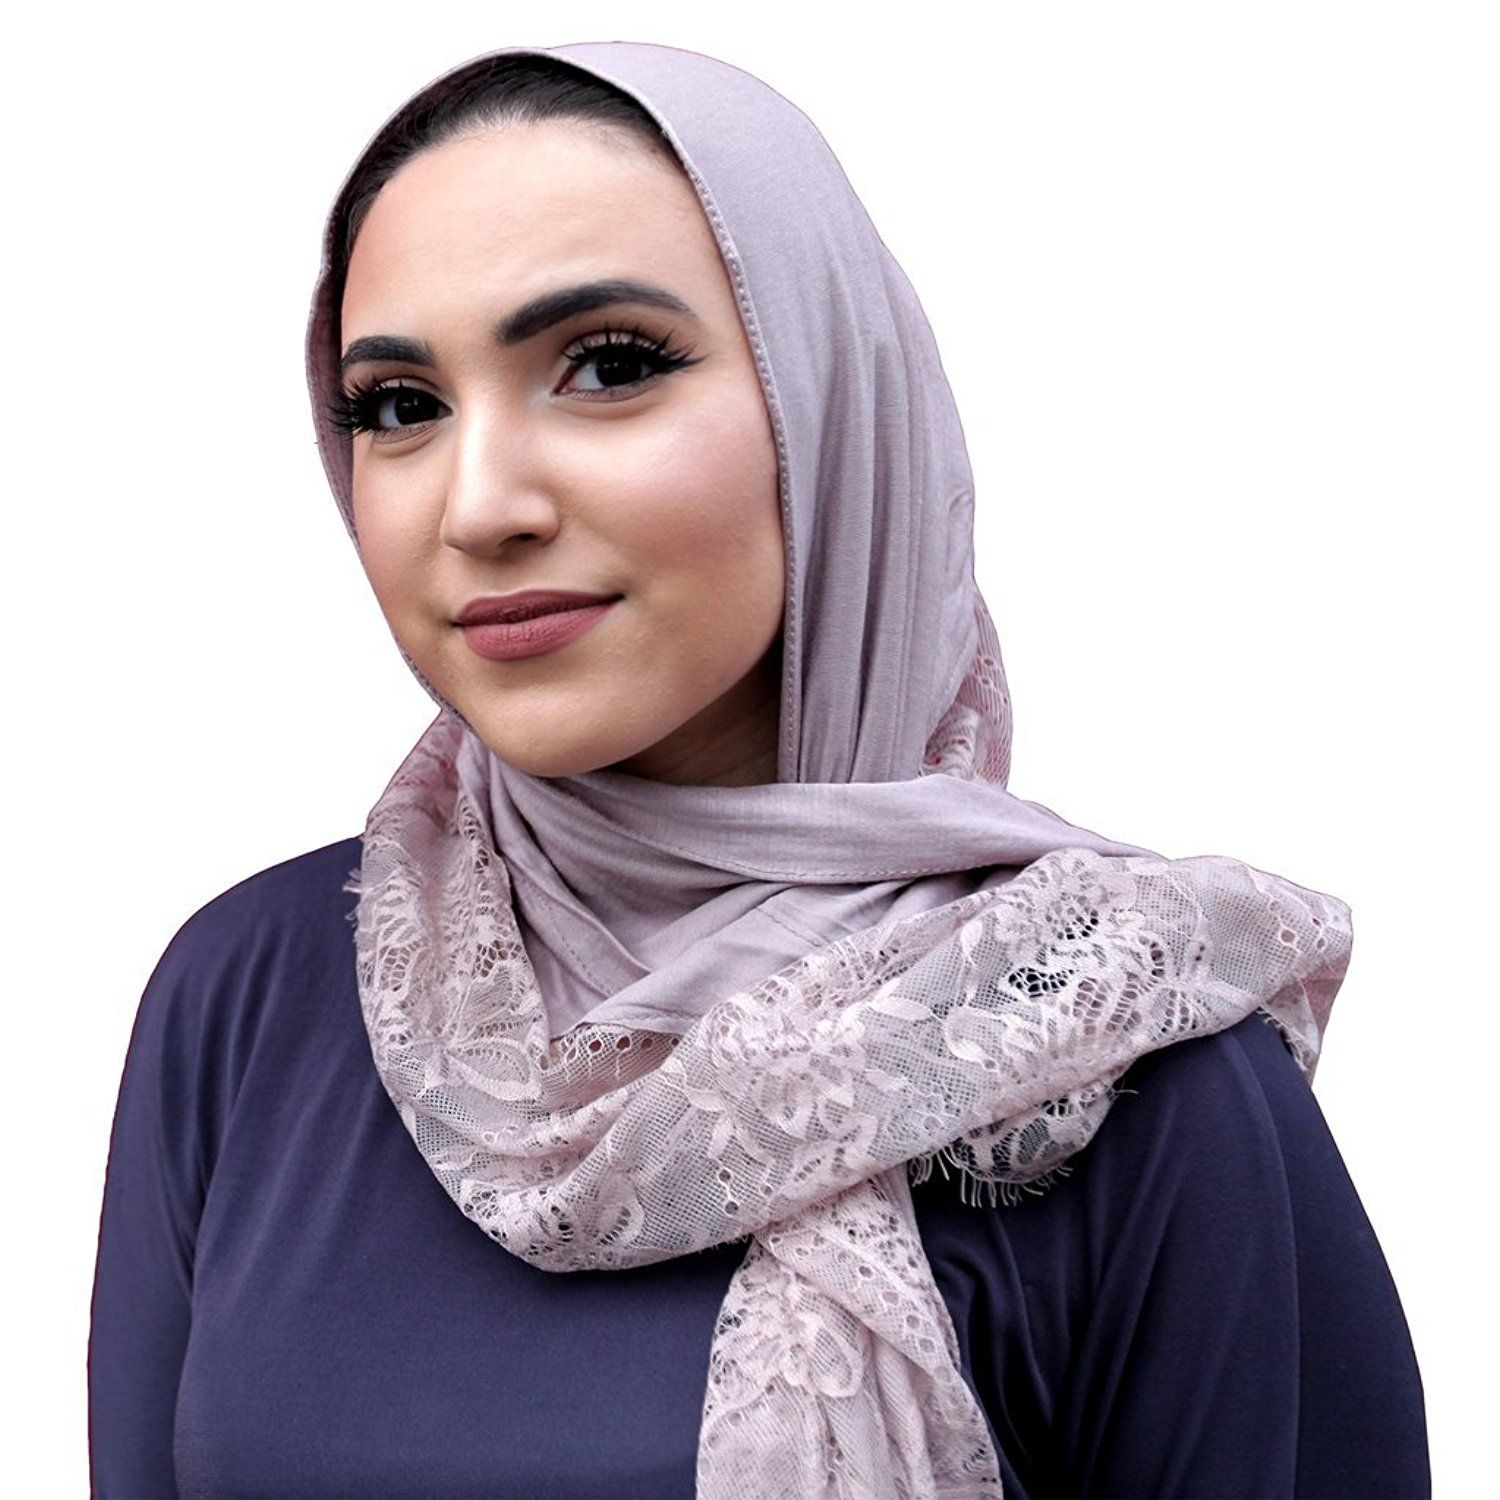 f4906469e02cb Amazon.com: Jersey Lace Hijab - Chocolate: Clothing | Jersey Lace ...